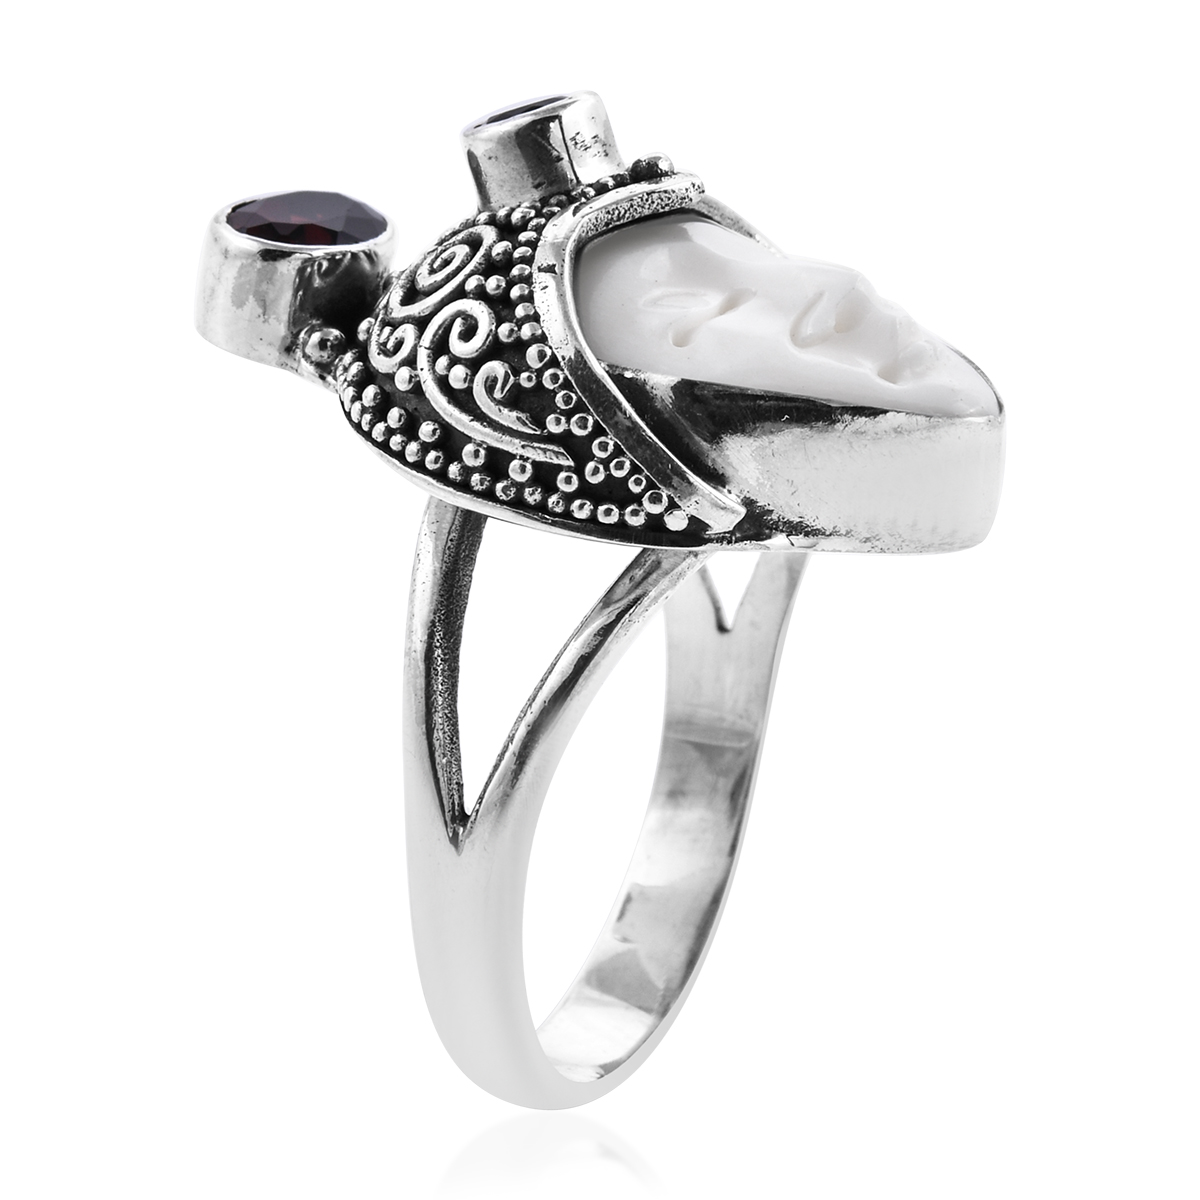 Bali Goddess Carved Bone, Mozambique Garnet Ring in Sterling Silver (Size 10.0) (Avg. 10.47 g) 1.26 ctw